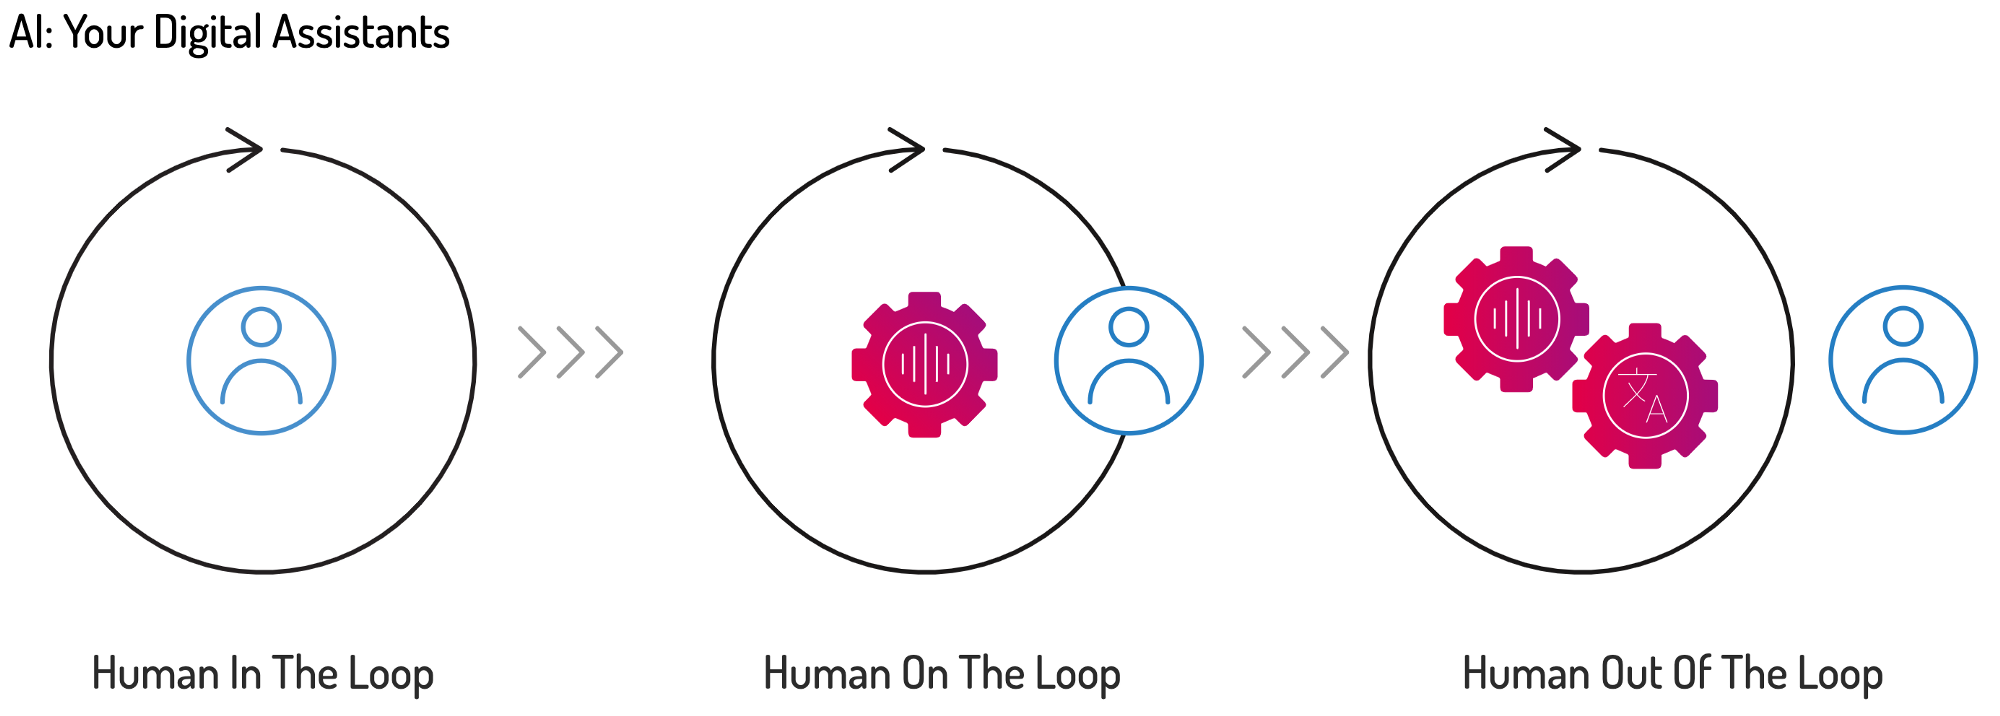 """Marketing diagram showing a progression from """"human in the loop"""" to """"human on the loop"""" to """"human out of the loop""""."""